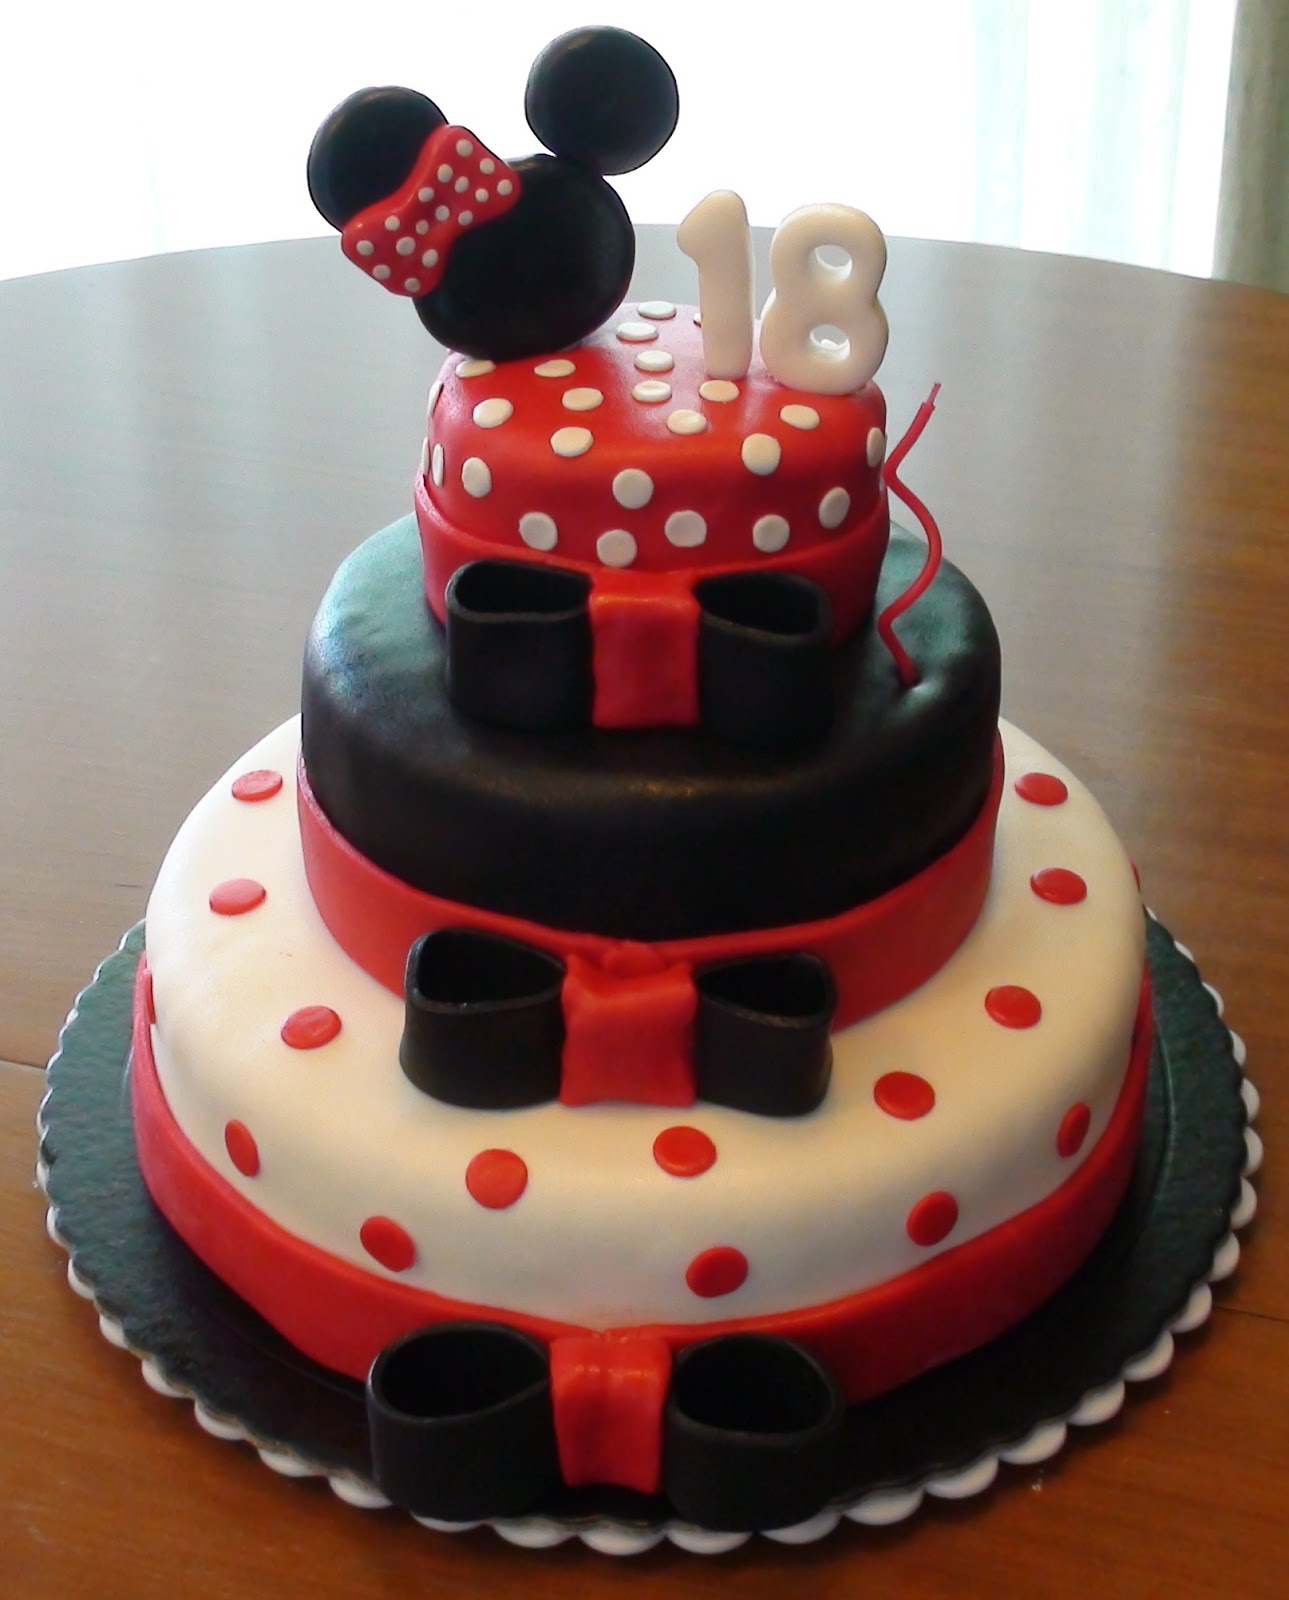 Pin Festa Da Minnie Rosa Wallpapers Real Madrid Pelautscom Cake on ...